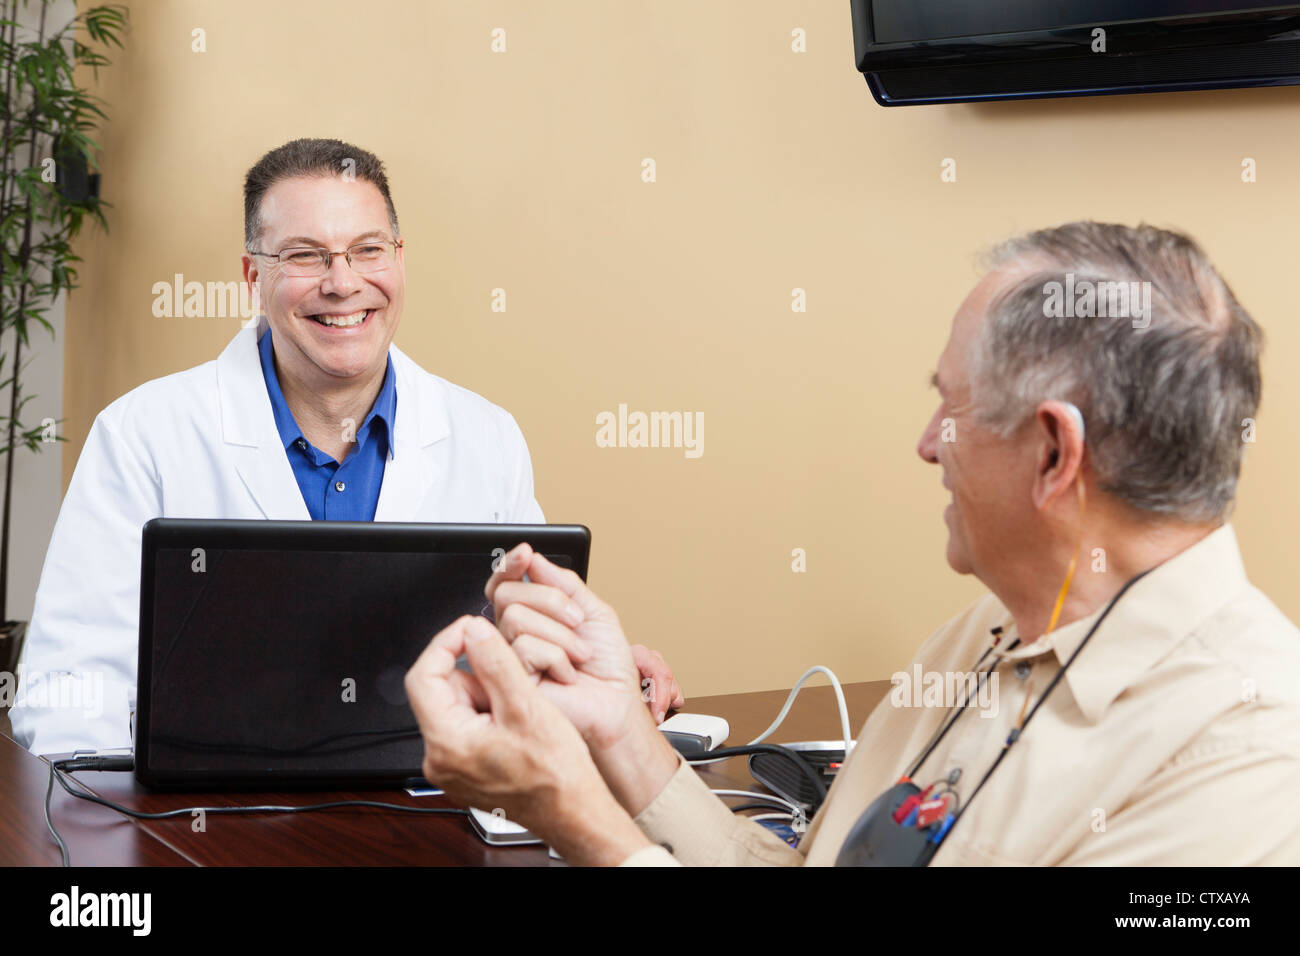 Patient providing feedback to an audiologist for hearing aid programming - Stock Image